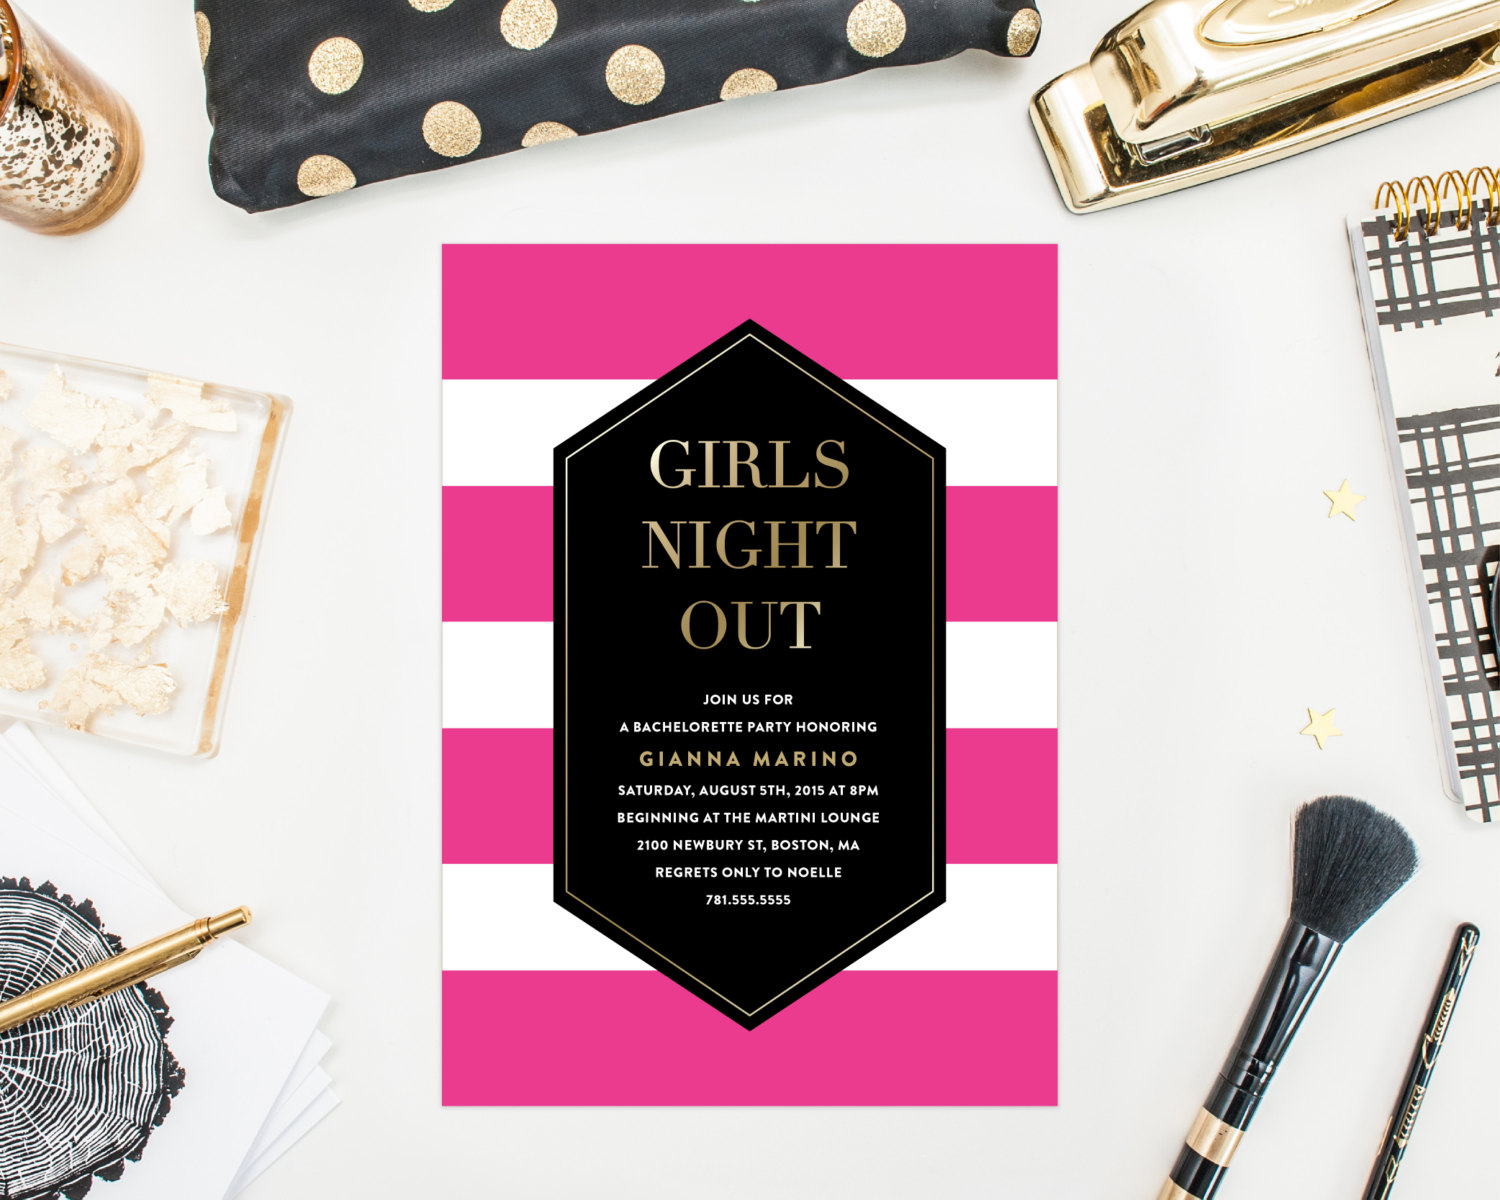 girls night out bachelorette party invitation by fine and dandy paperie | fun bachelorette party ideas | https://emmalinebride.com/planning/fun-bachelorette-party-ideas/